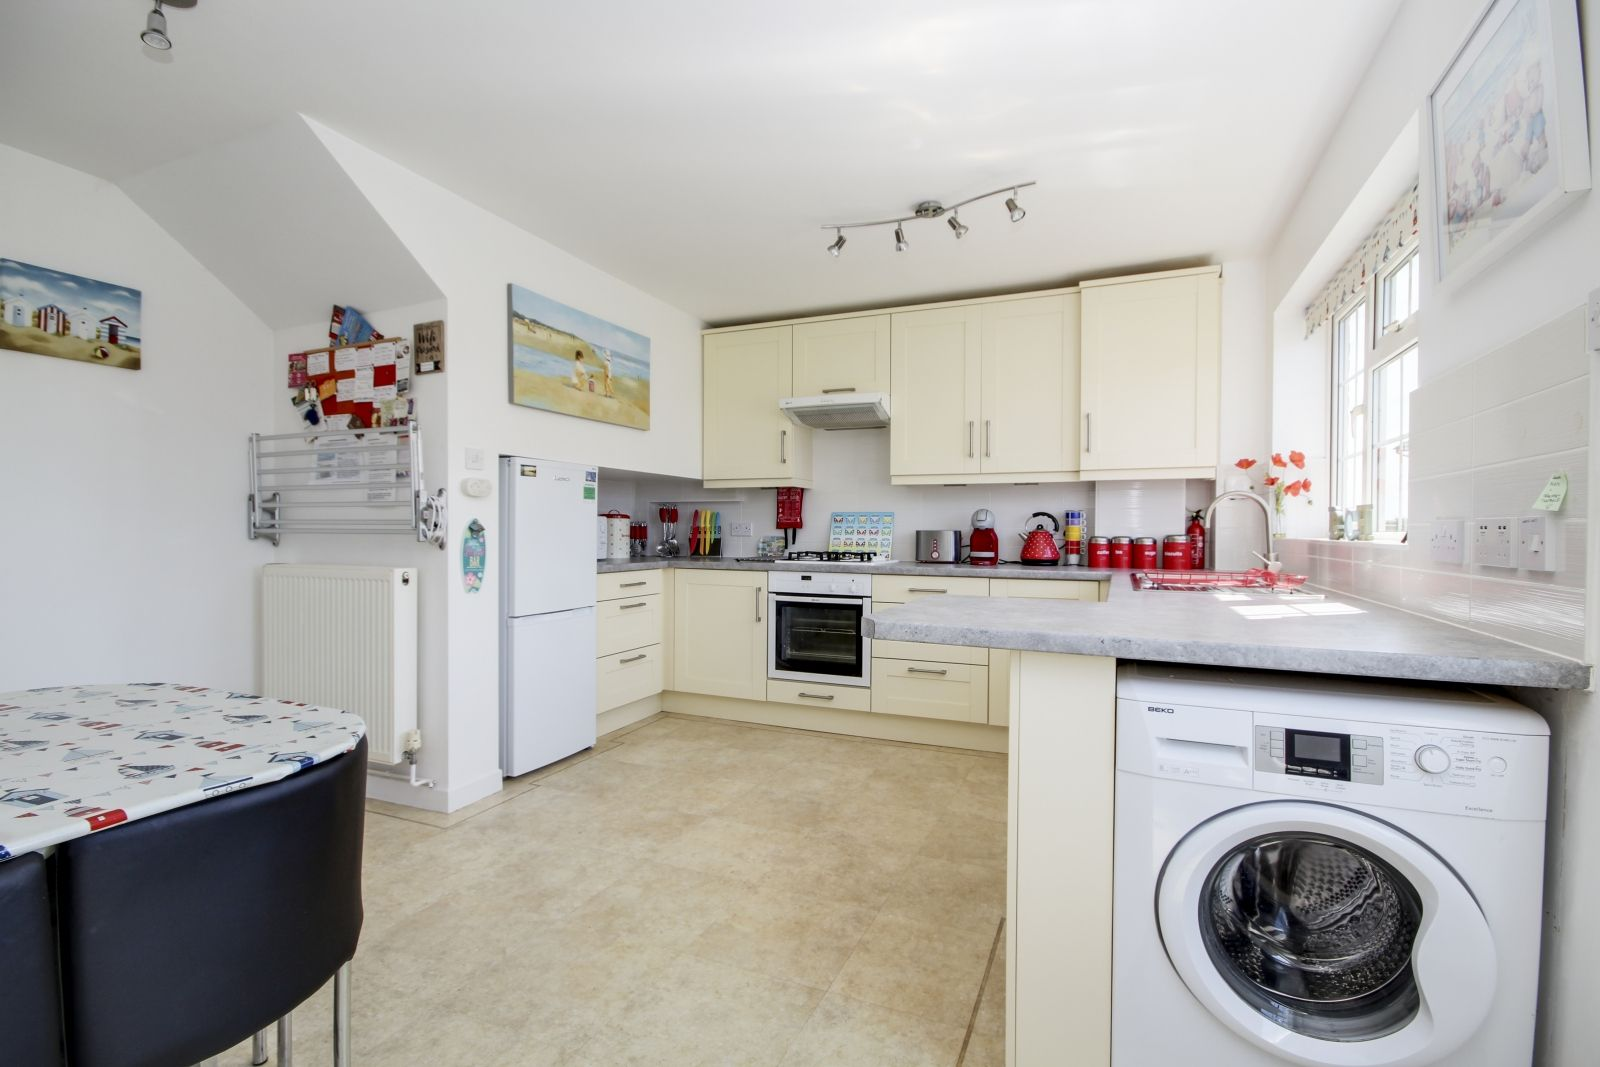 2 bed  for sale in Ferring Marine 9